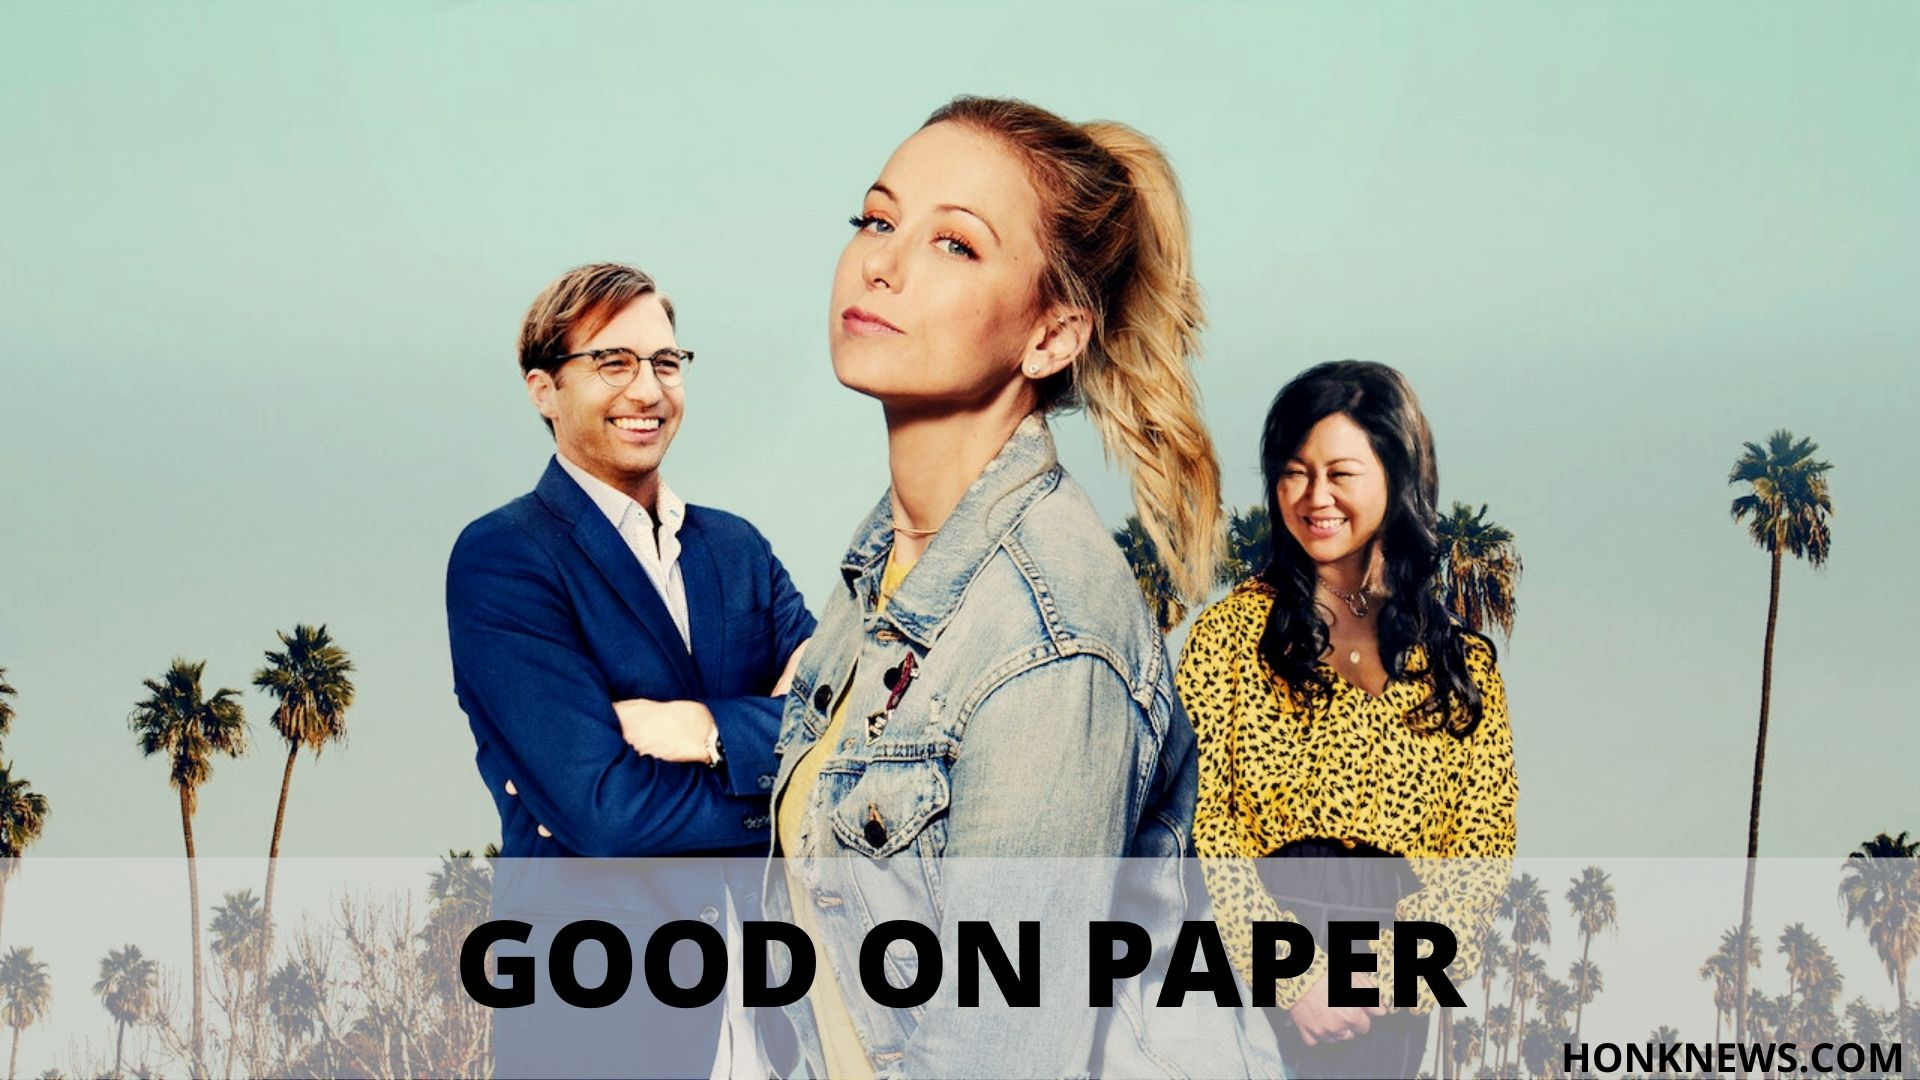 Based On Real Life Story : Good On Paper